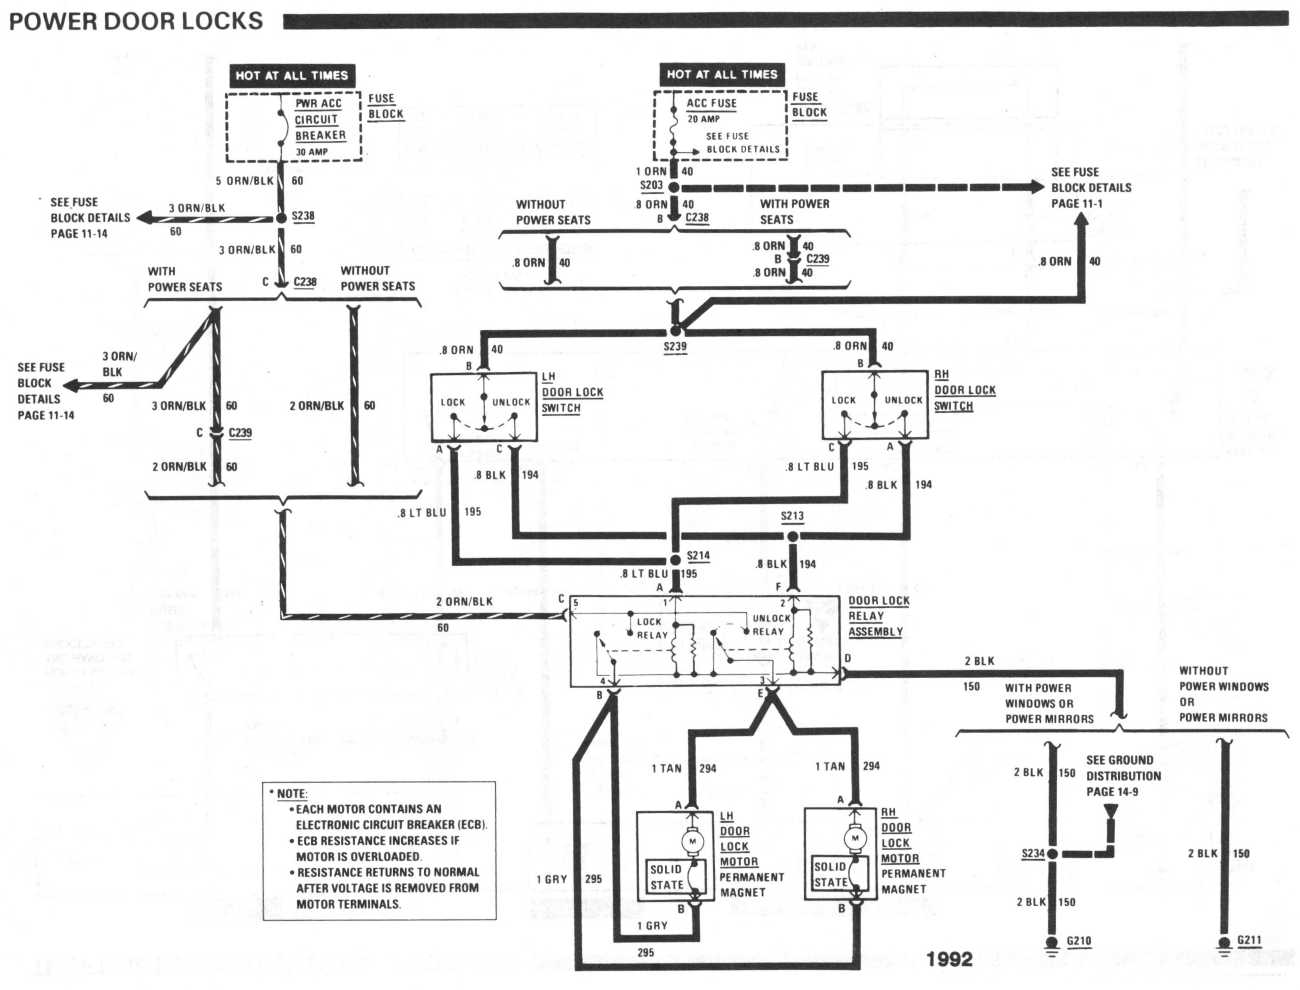 1978 Trans Am Wiring Diagram Power Windows Wire Data Schema 1981 Pontiac Fuse Box Door Locks Not Working At All Third Generation F Camaro 1970 Firebird